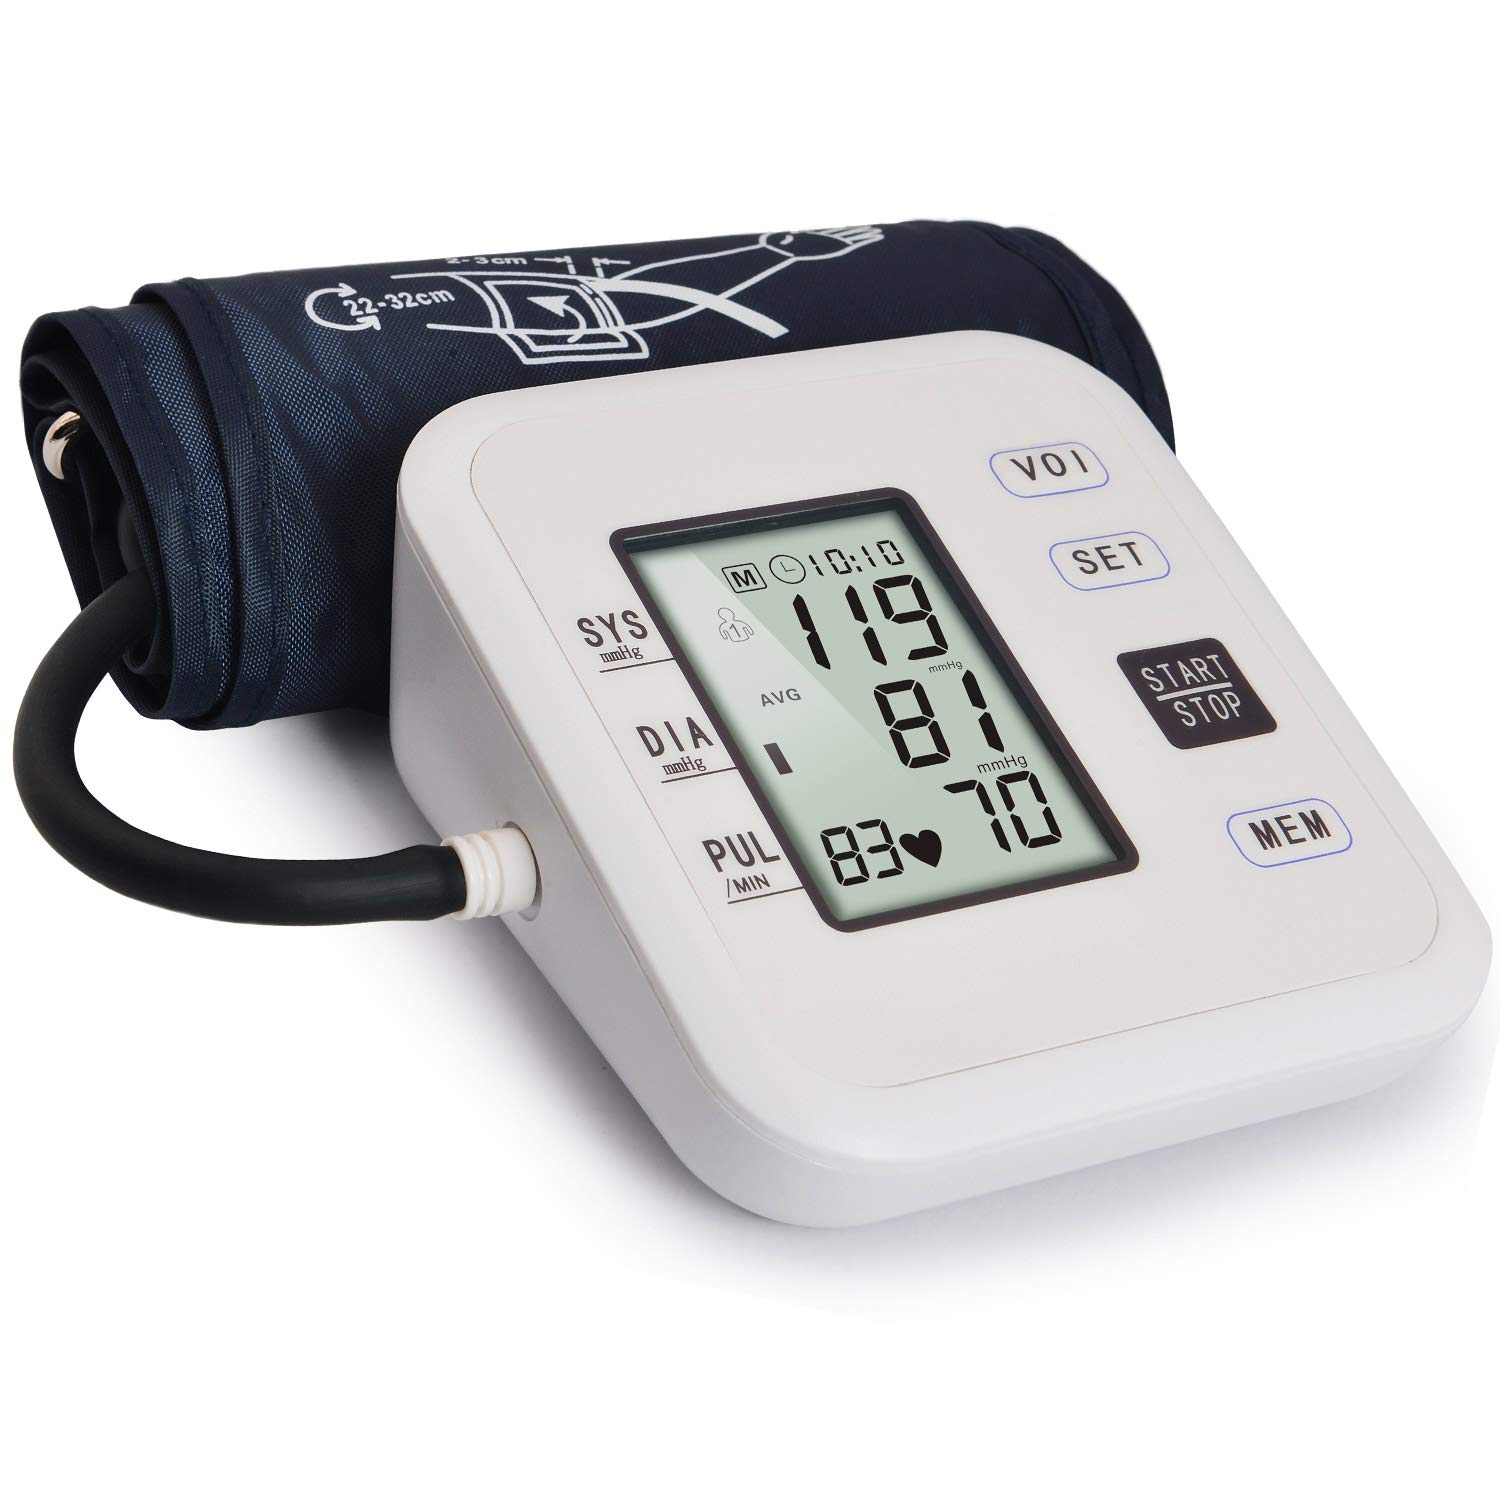 Hong S Upper Arm Blood Pressure Monitor Large LCD Display & Voice Broadcast with Adjustable Cuff (8.7'' - 12.6'') for 2 User/99 Set Memory Each Suitable for Home Use